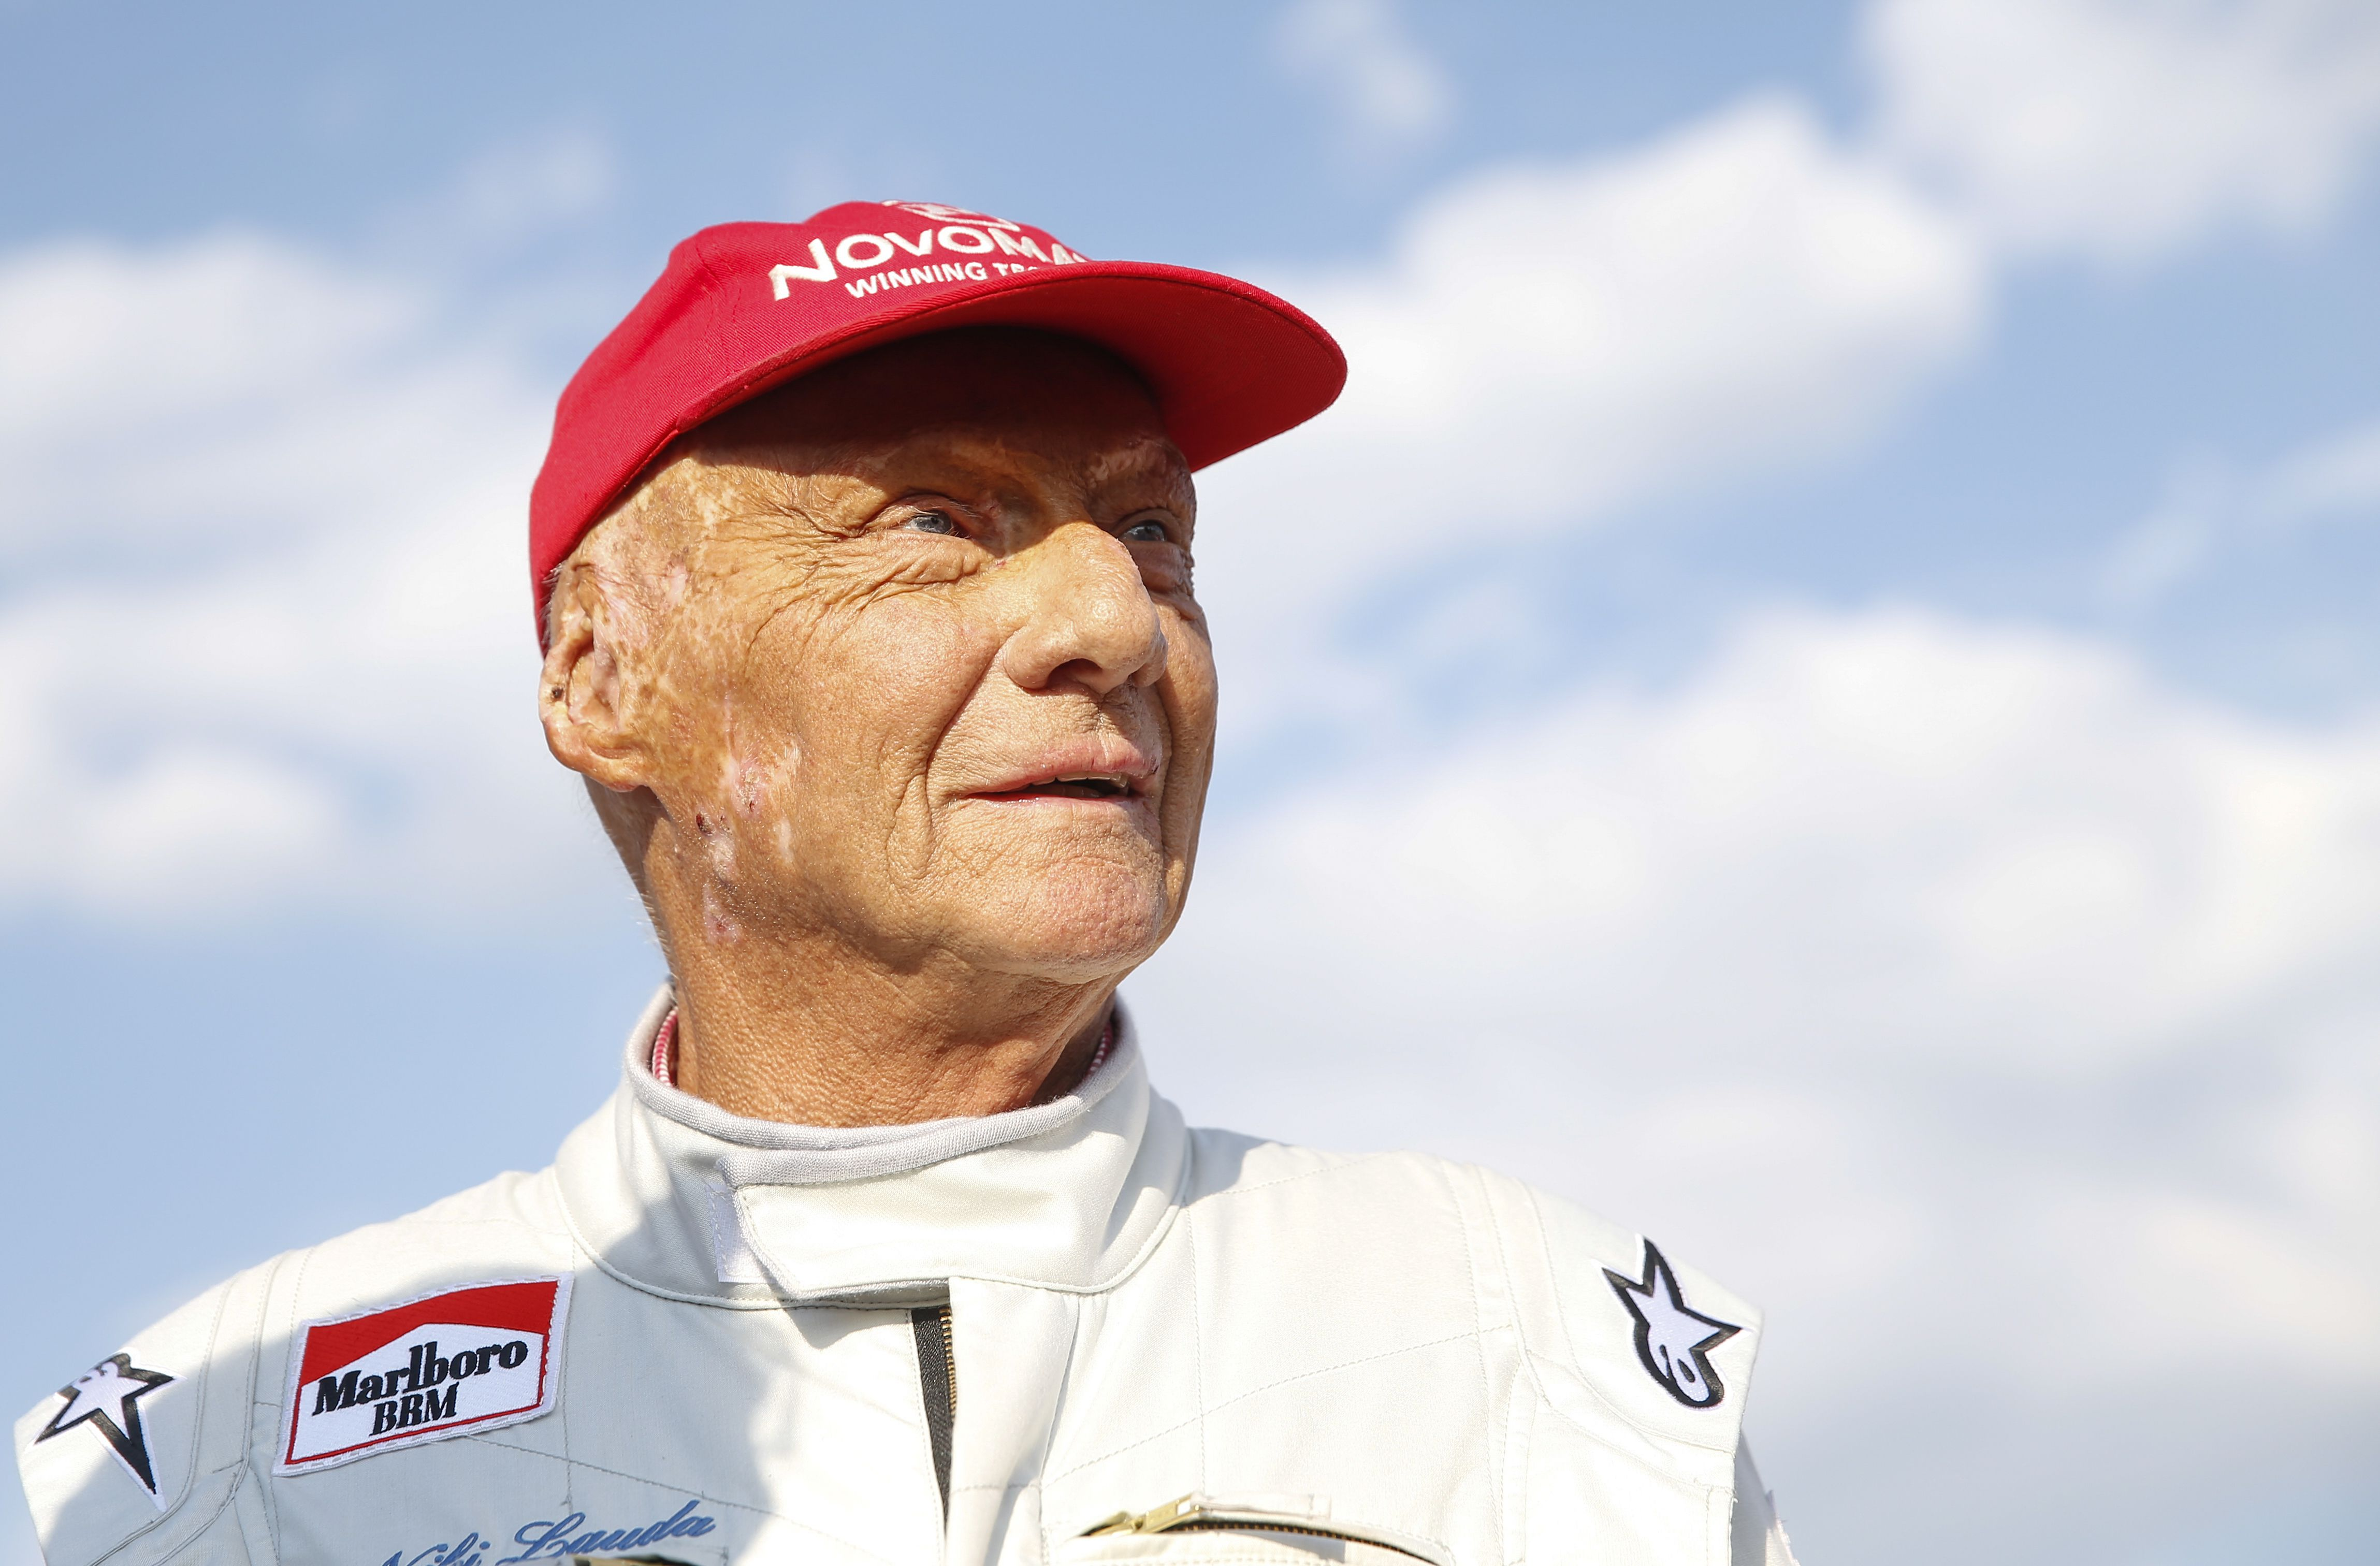 Niki Lauda has died at the age of 70